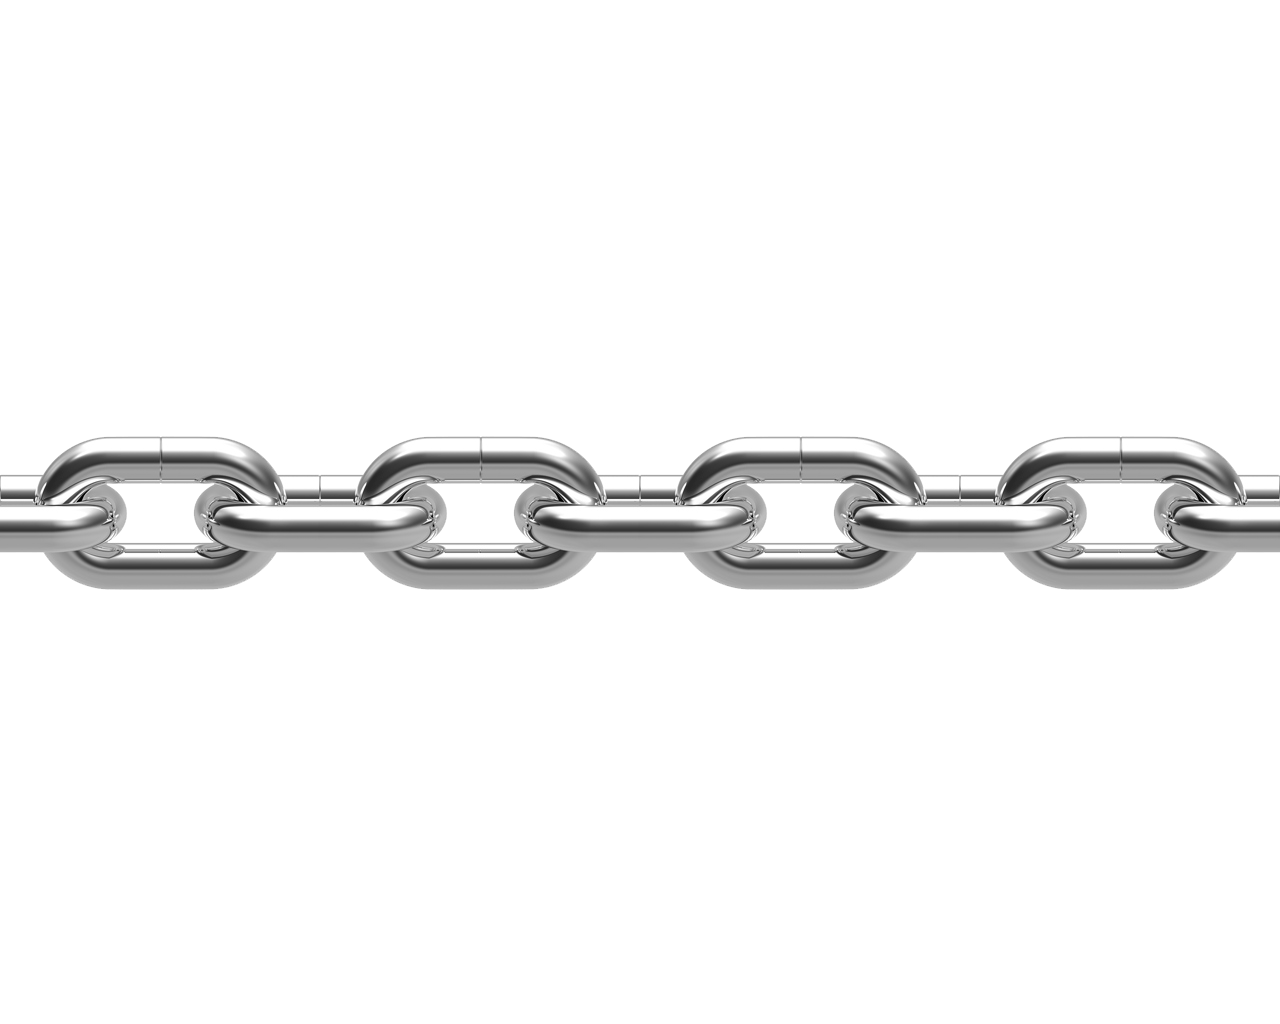 Transparent link chain. Single line png stickpng